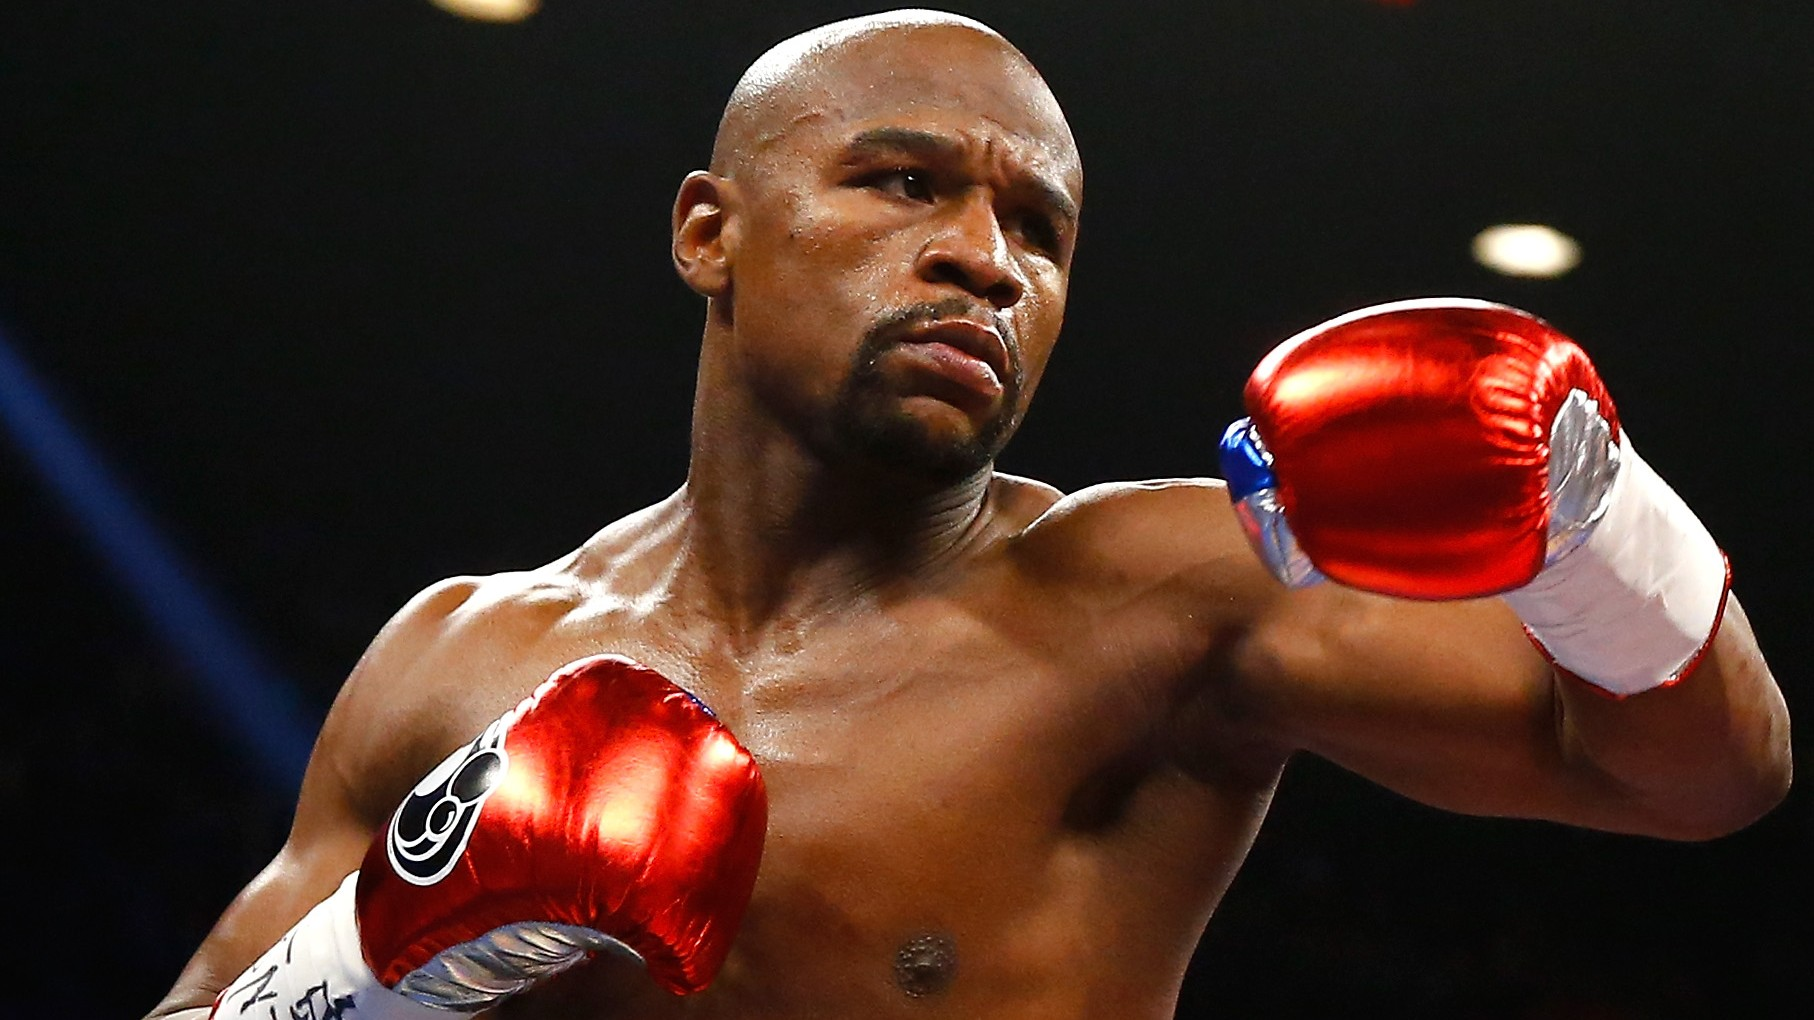 Floyd Mayweather Net Worth, Age, Height, Profile, Record, Instagram